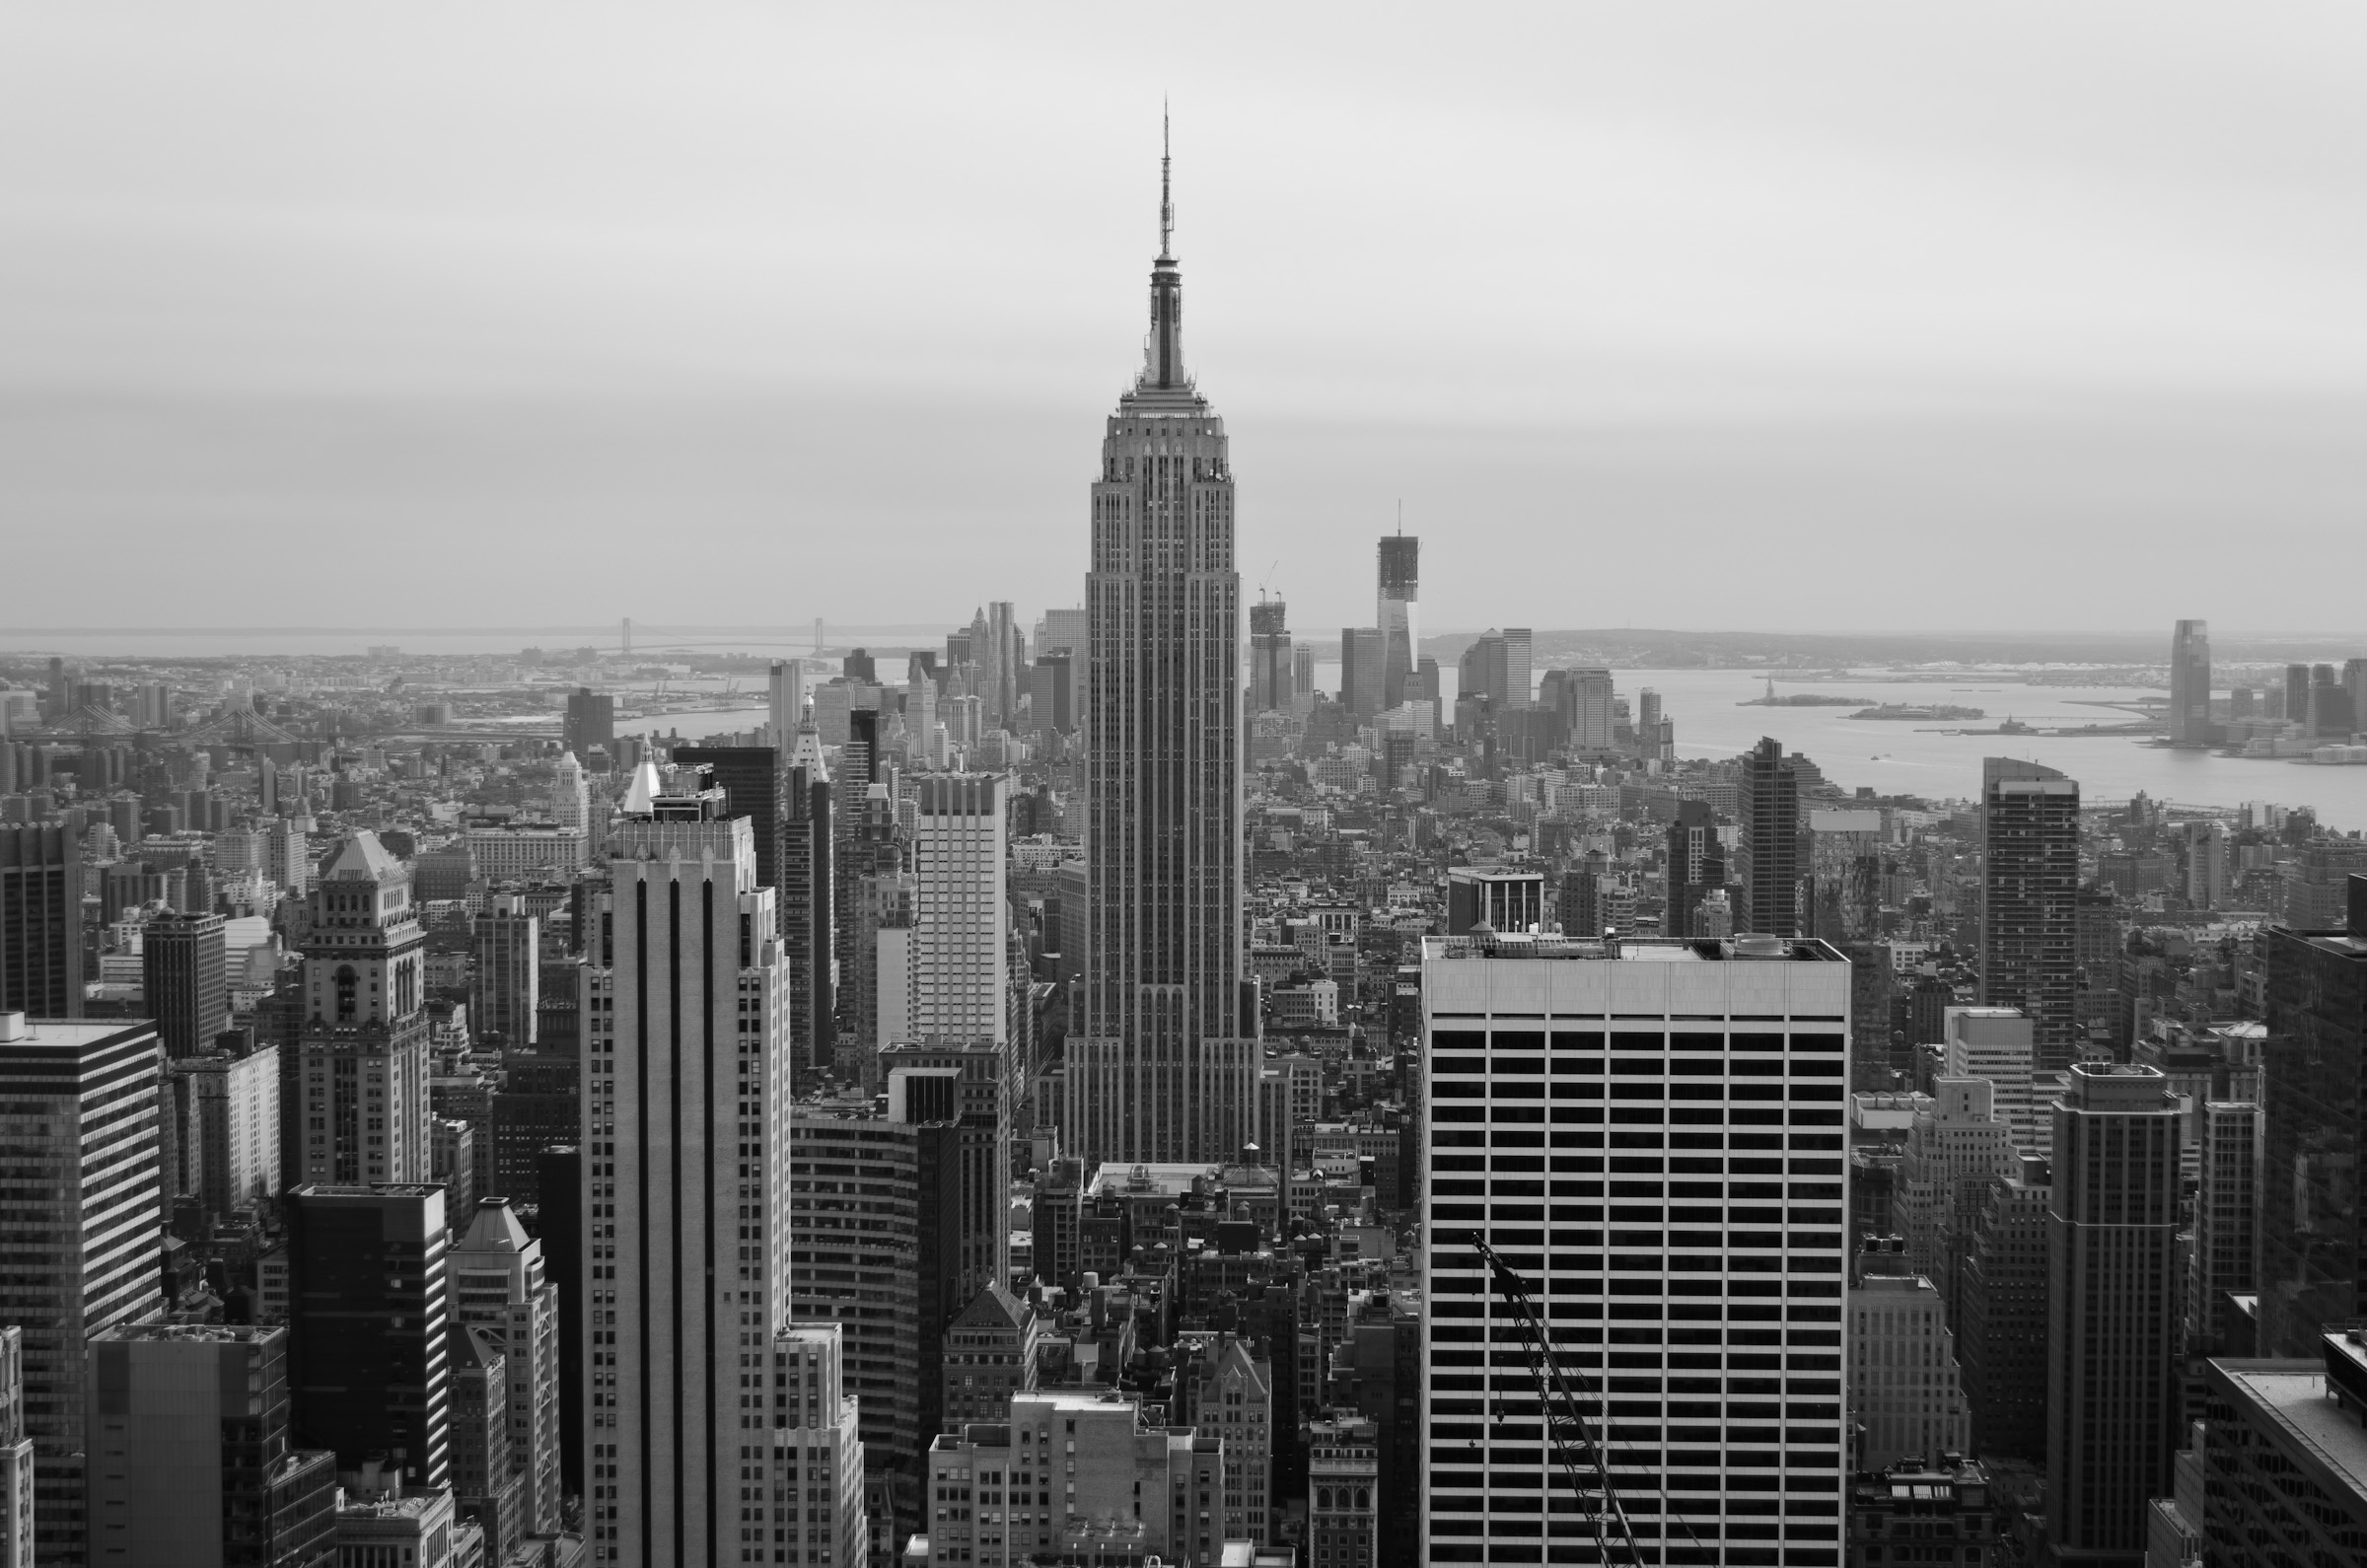 Empire State Building: The Charm Of The Empire State Building (New York